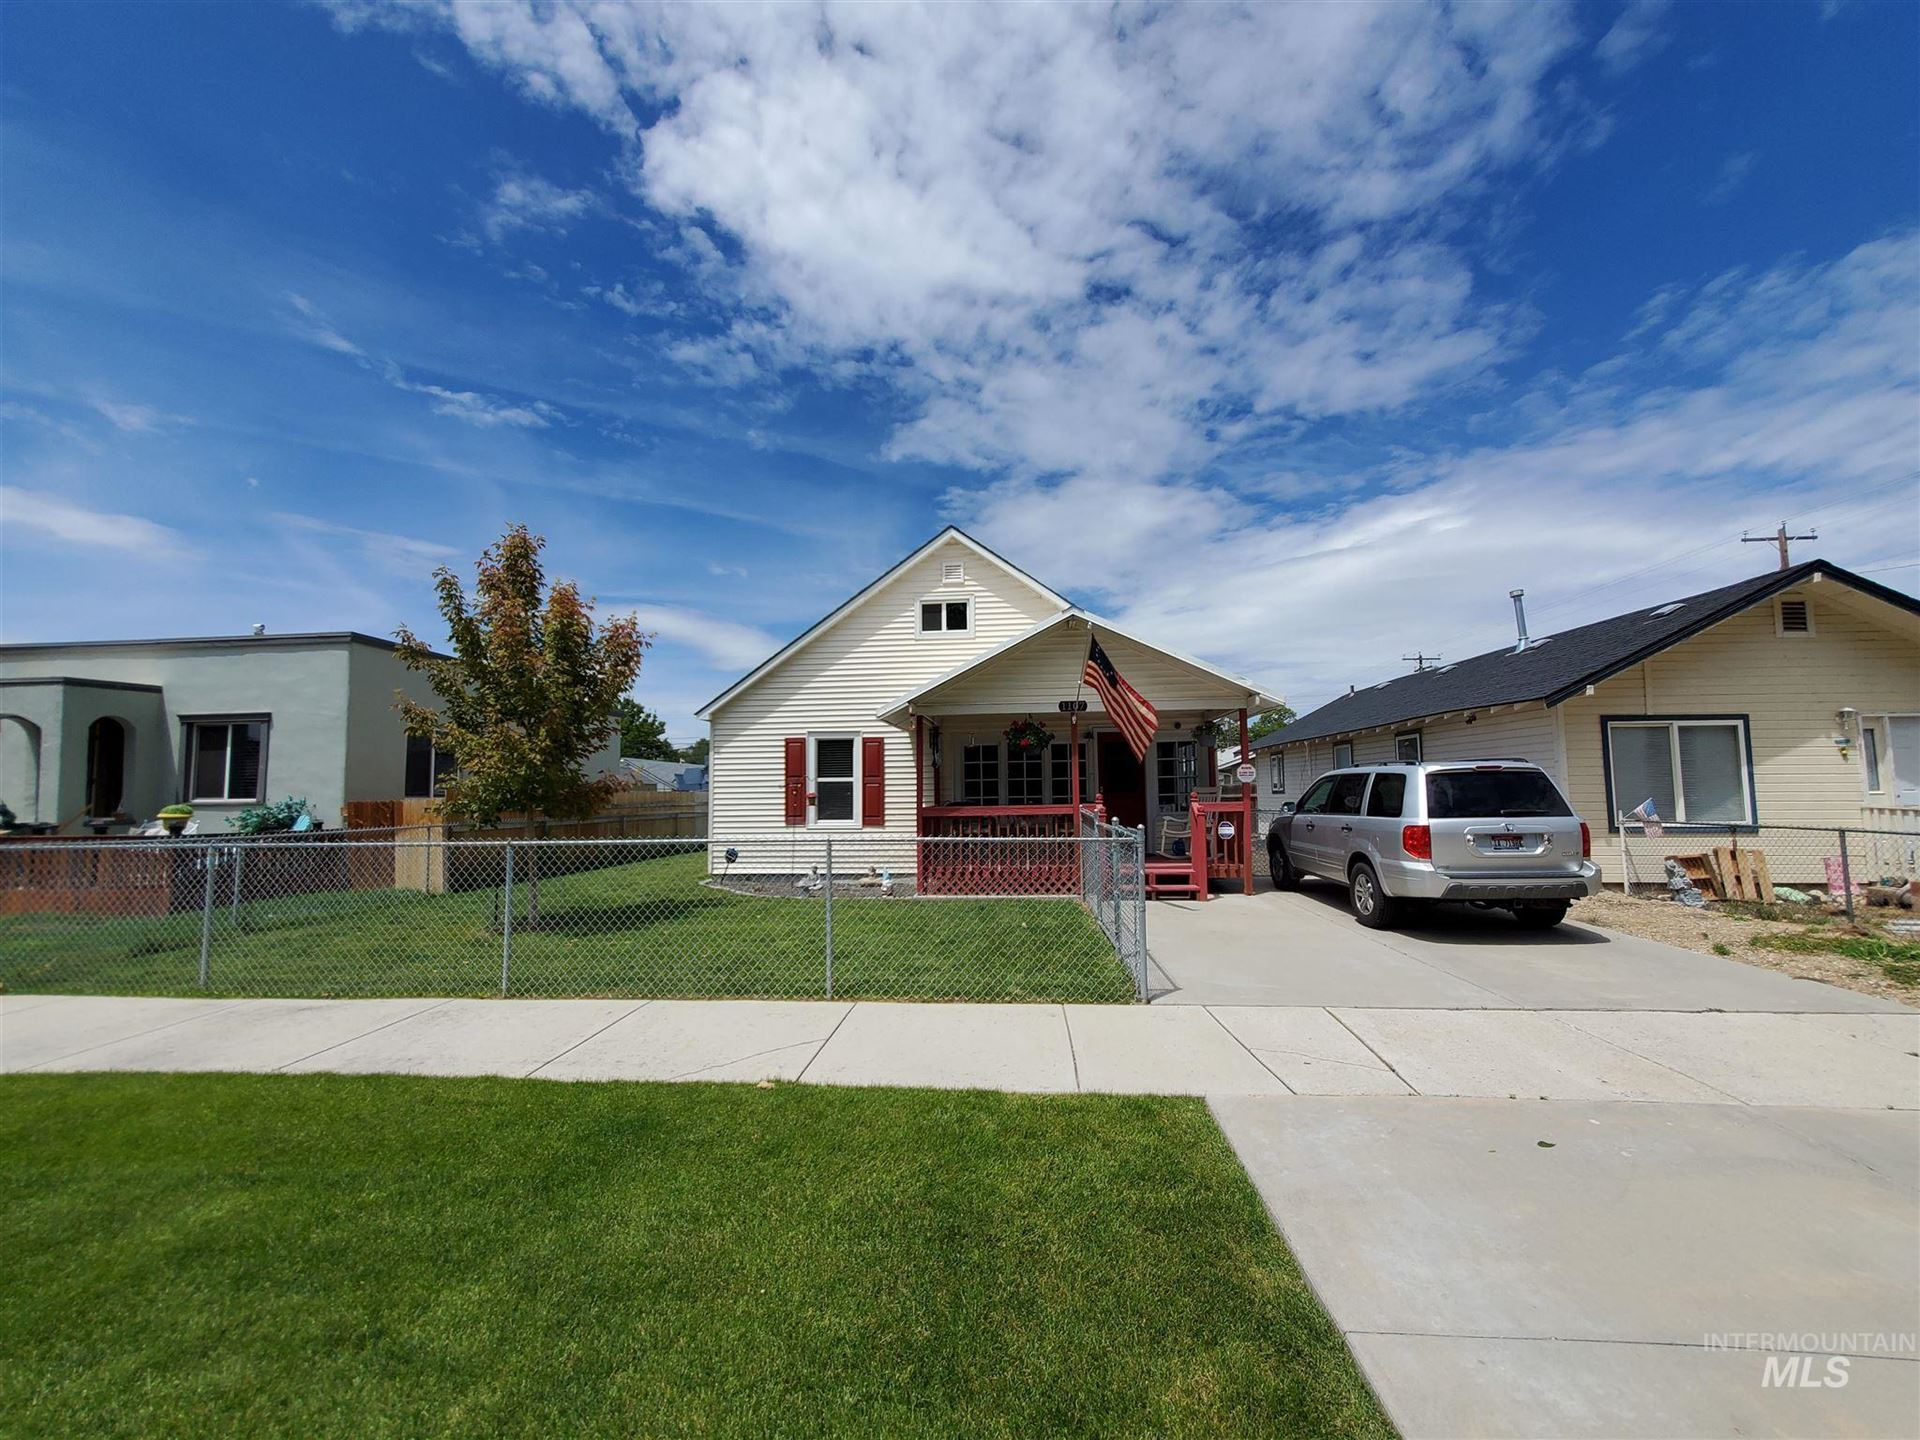 Photo of 1107 13th Ave S, Nampa, ID 83651-4622 (MLS # 98806790)